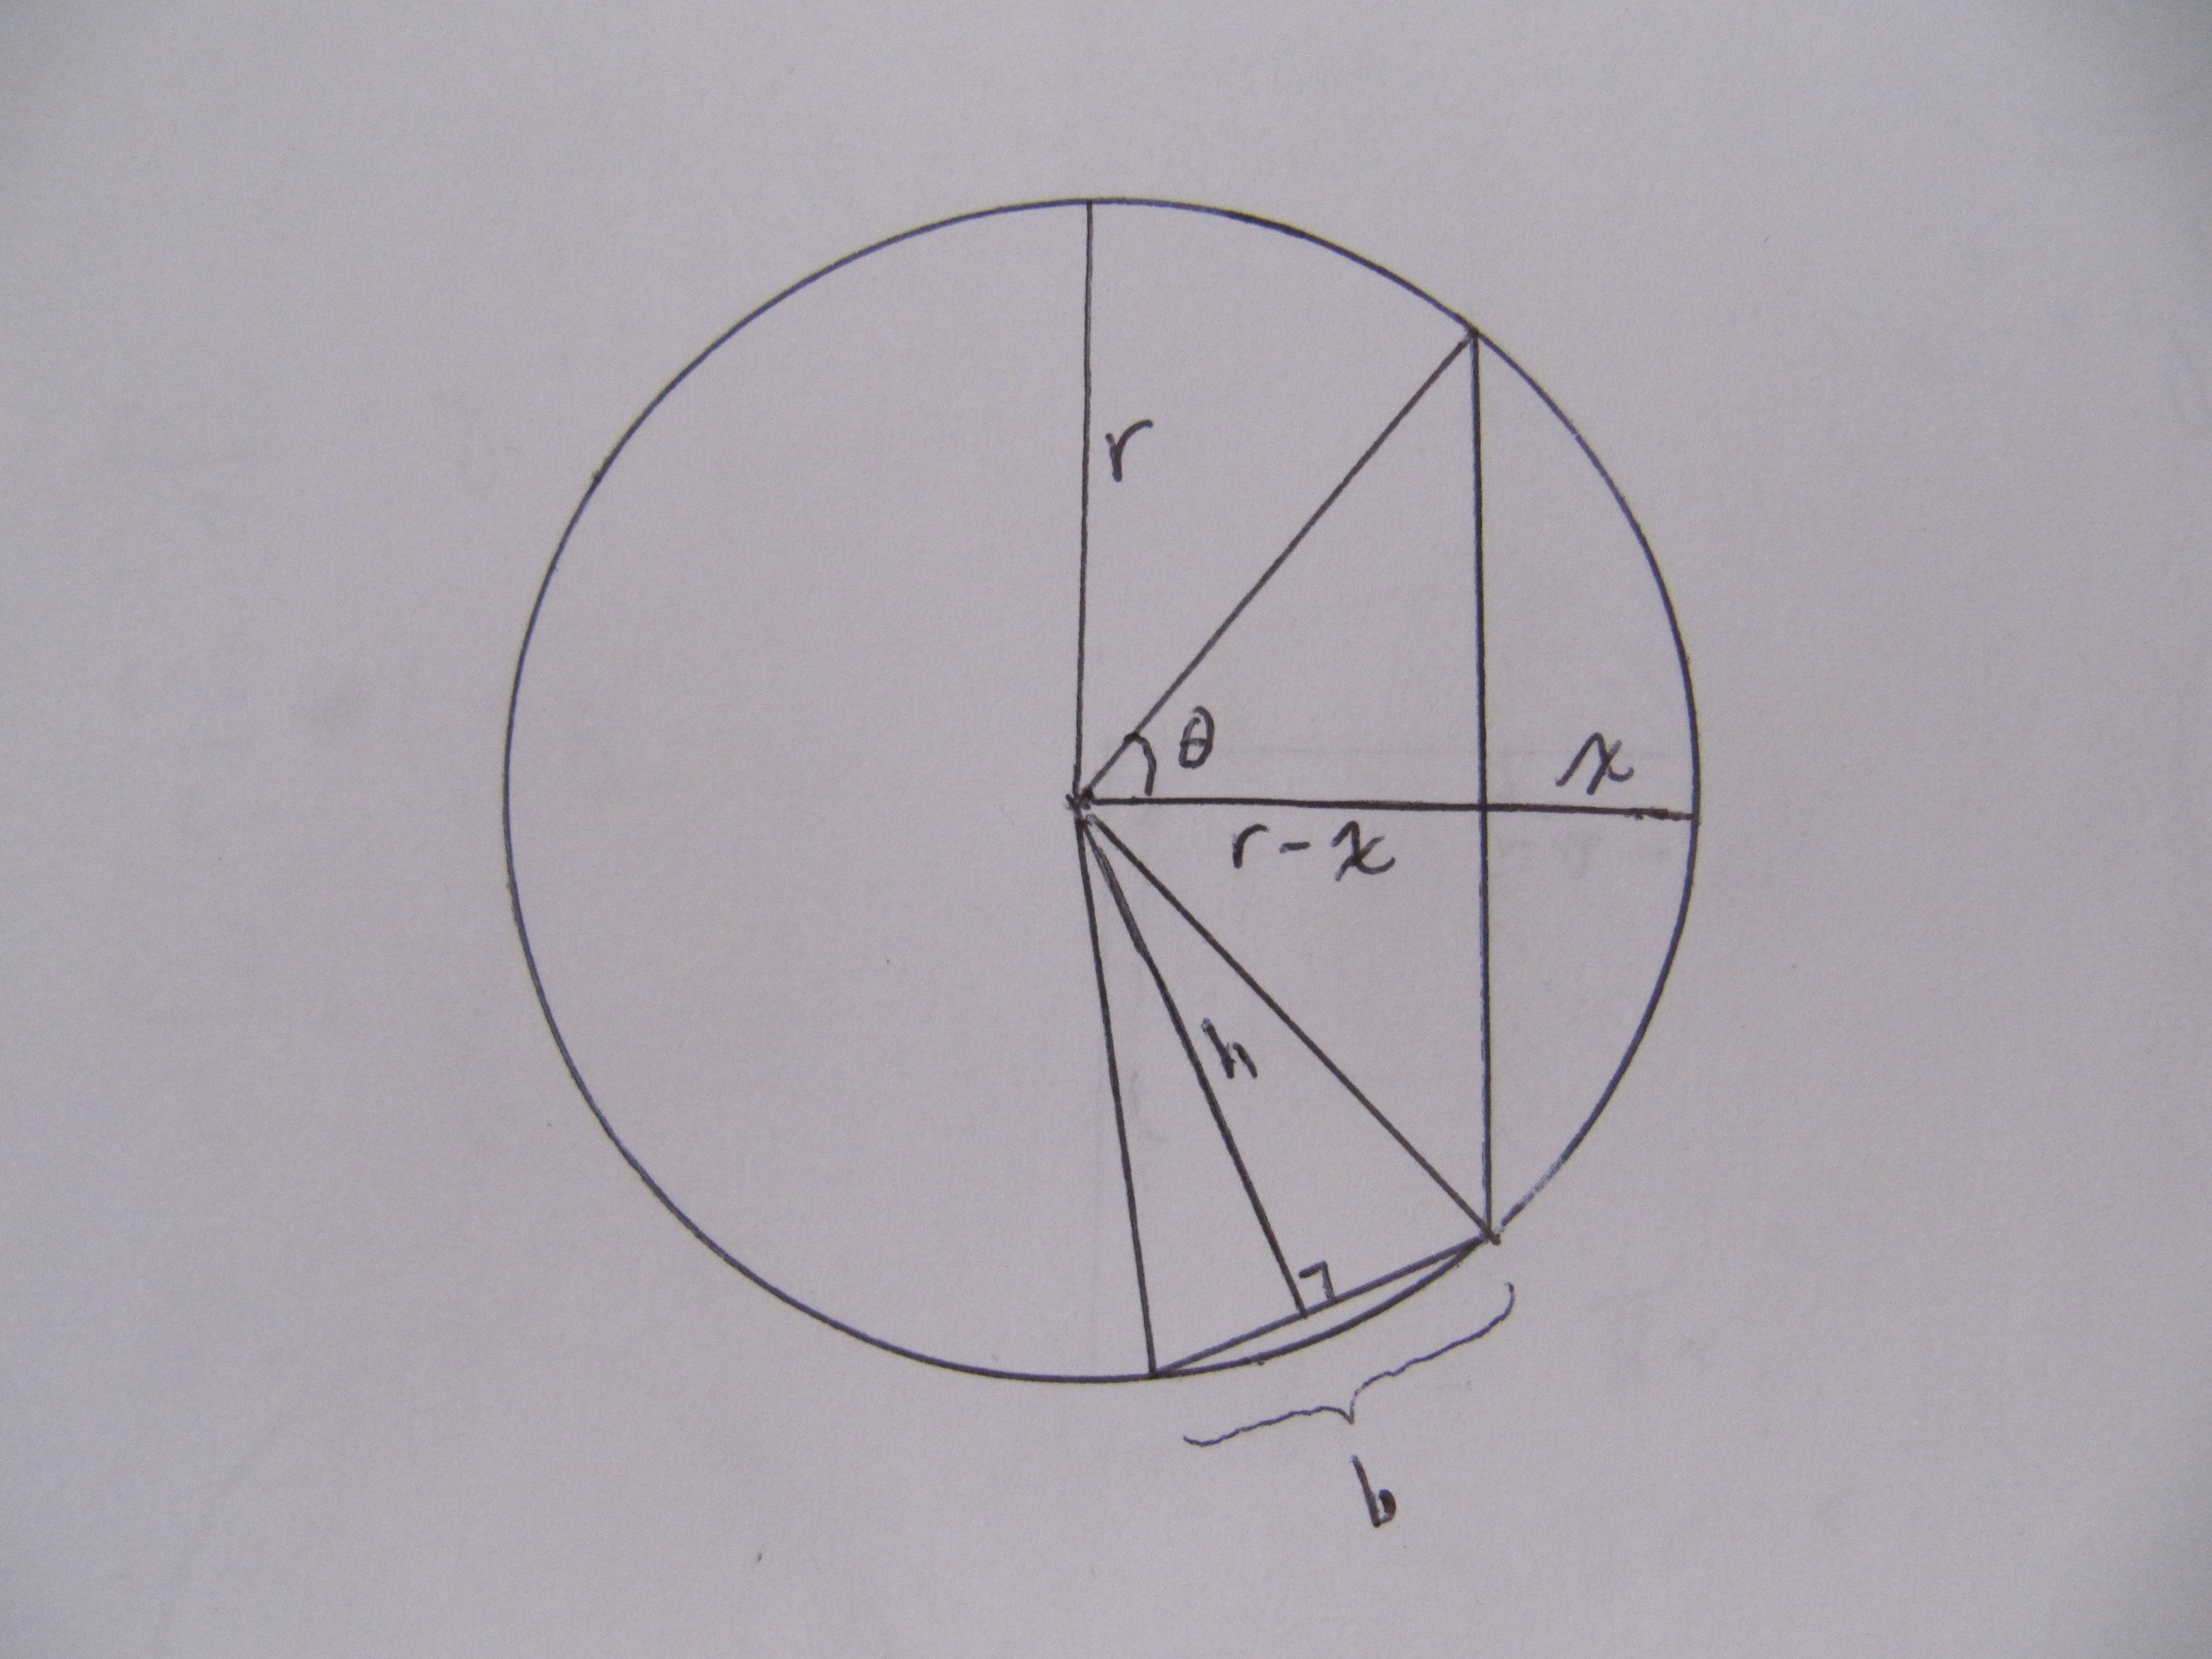 Formula for the area of a circle with a flat side